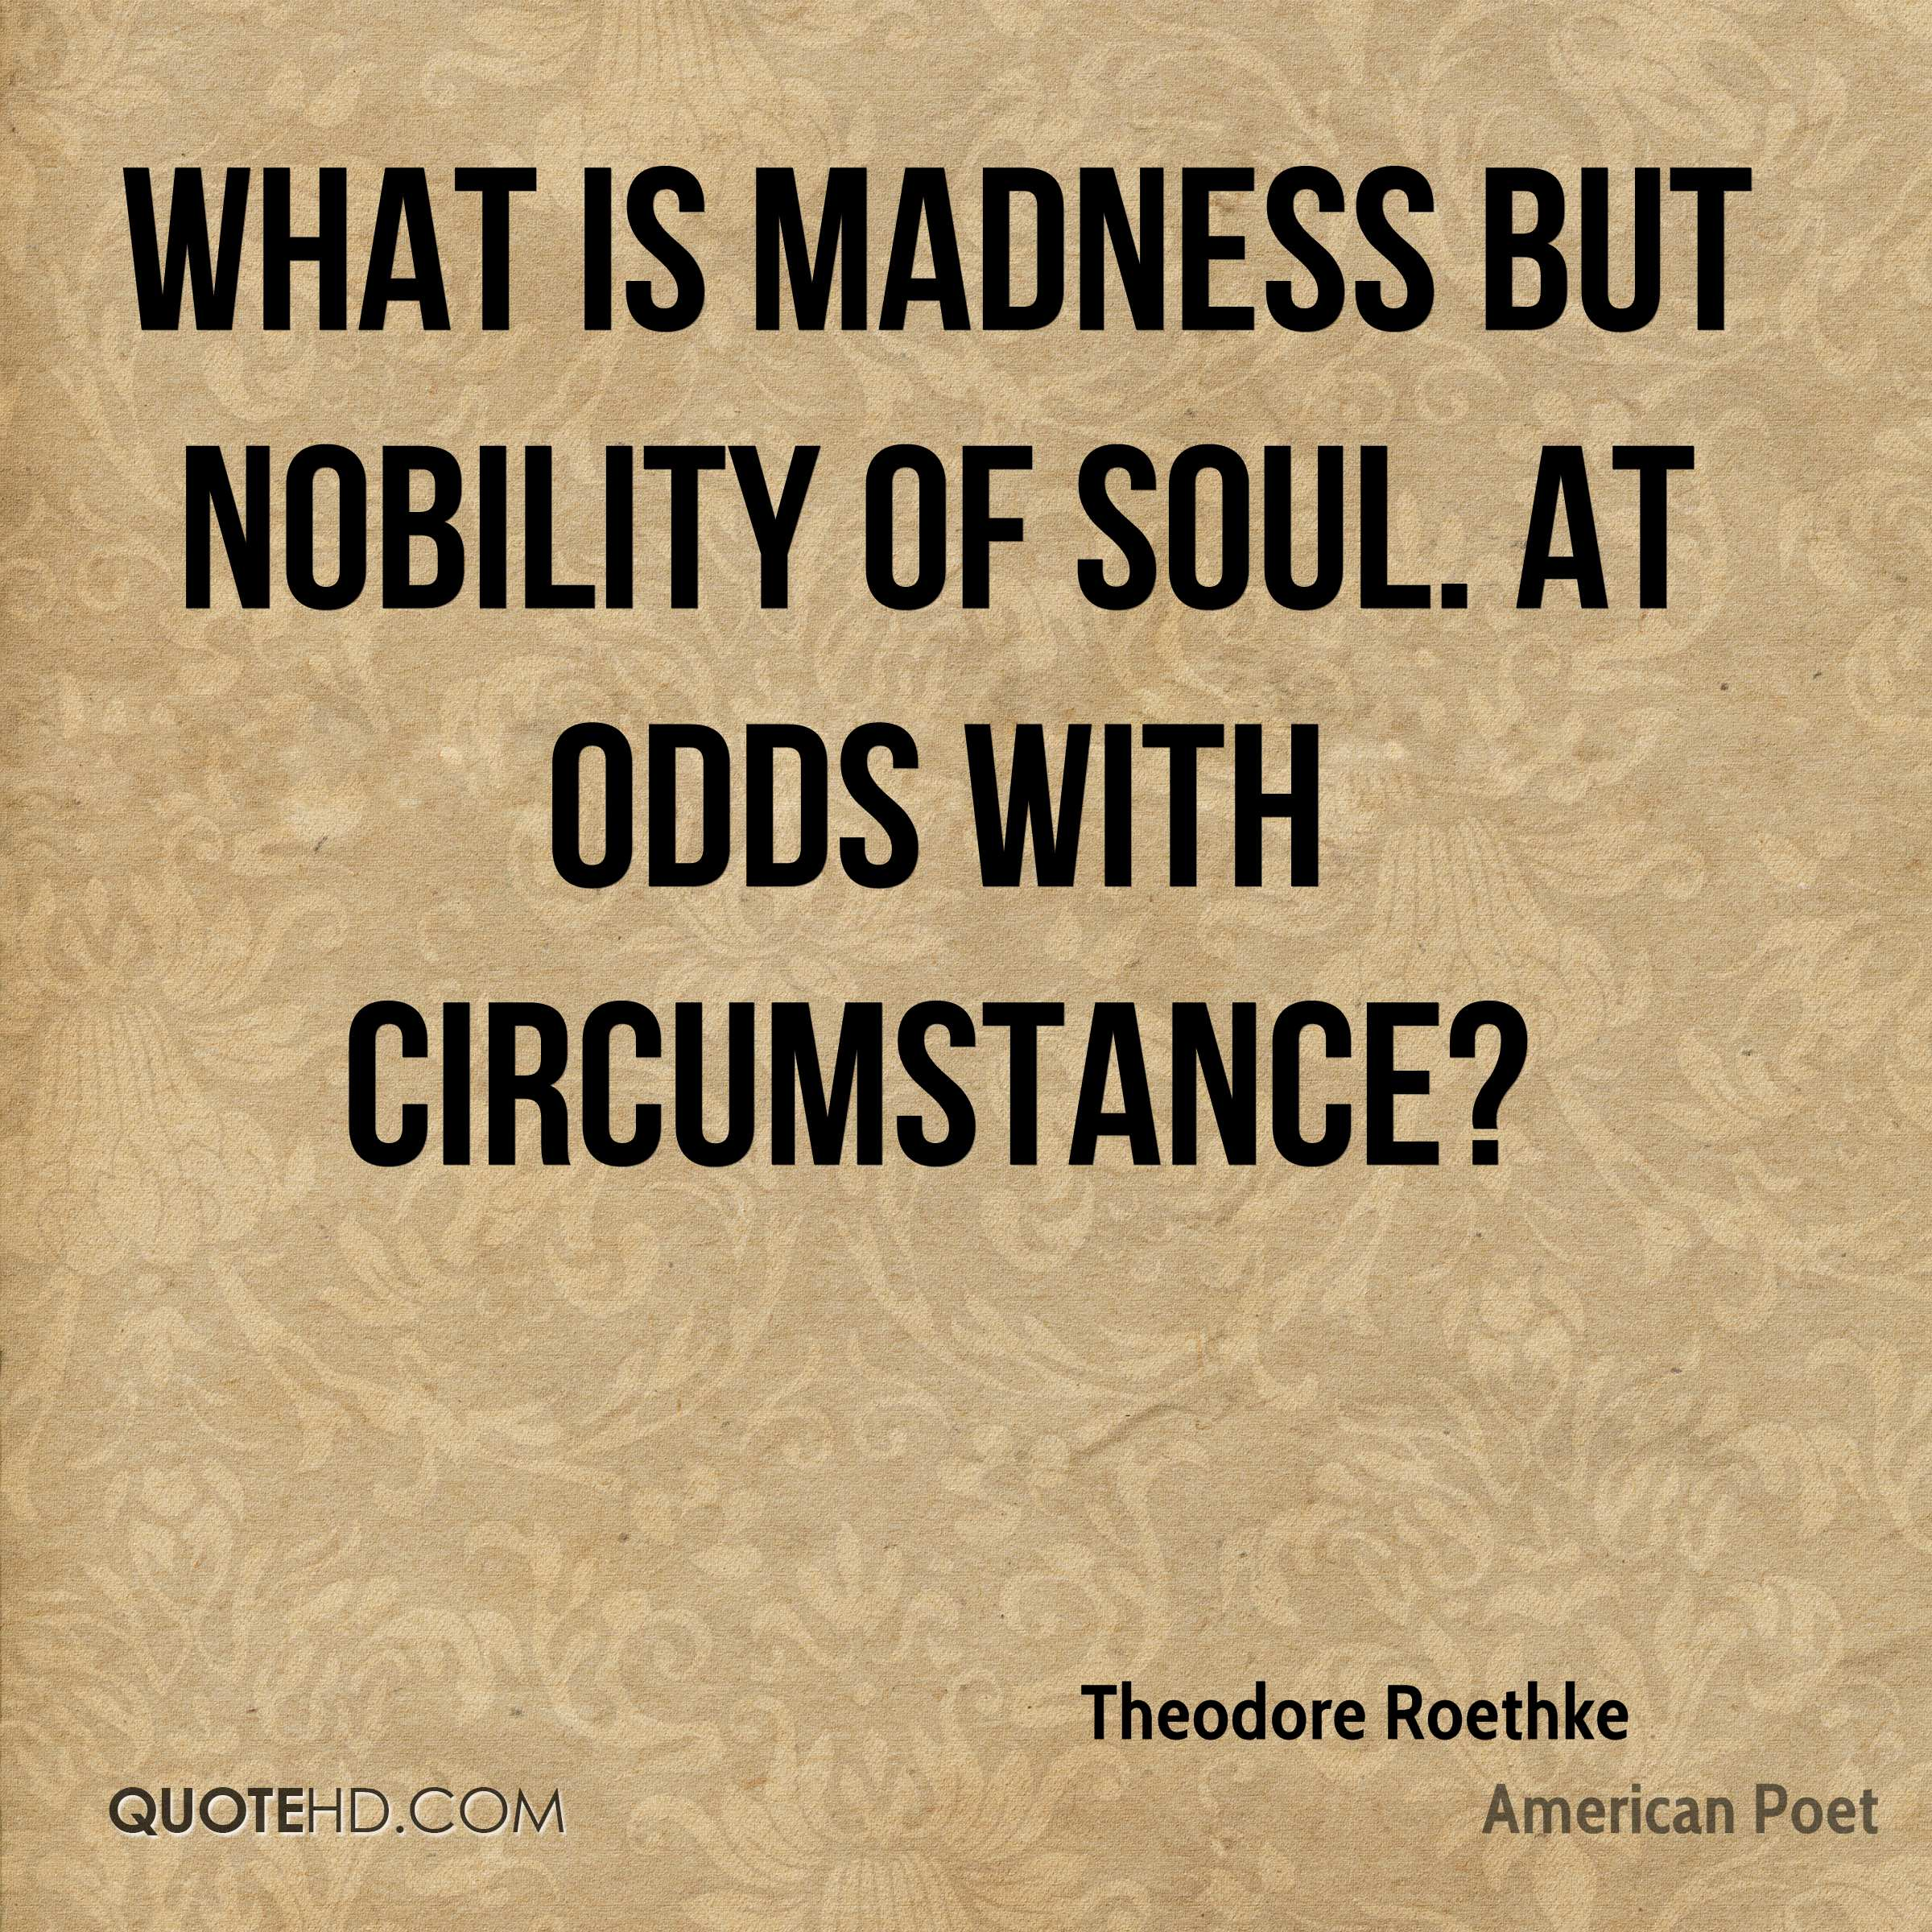 What is madness but nobility of soul. At odds with circumstance?